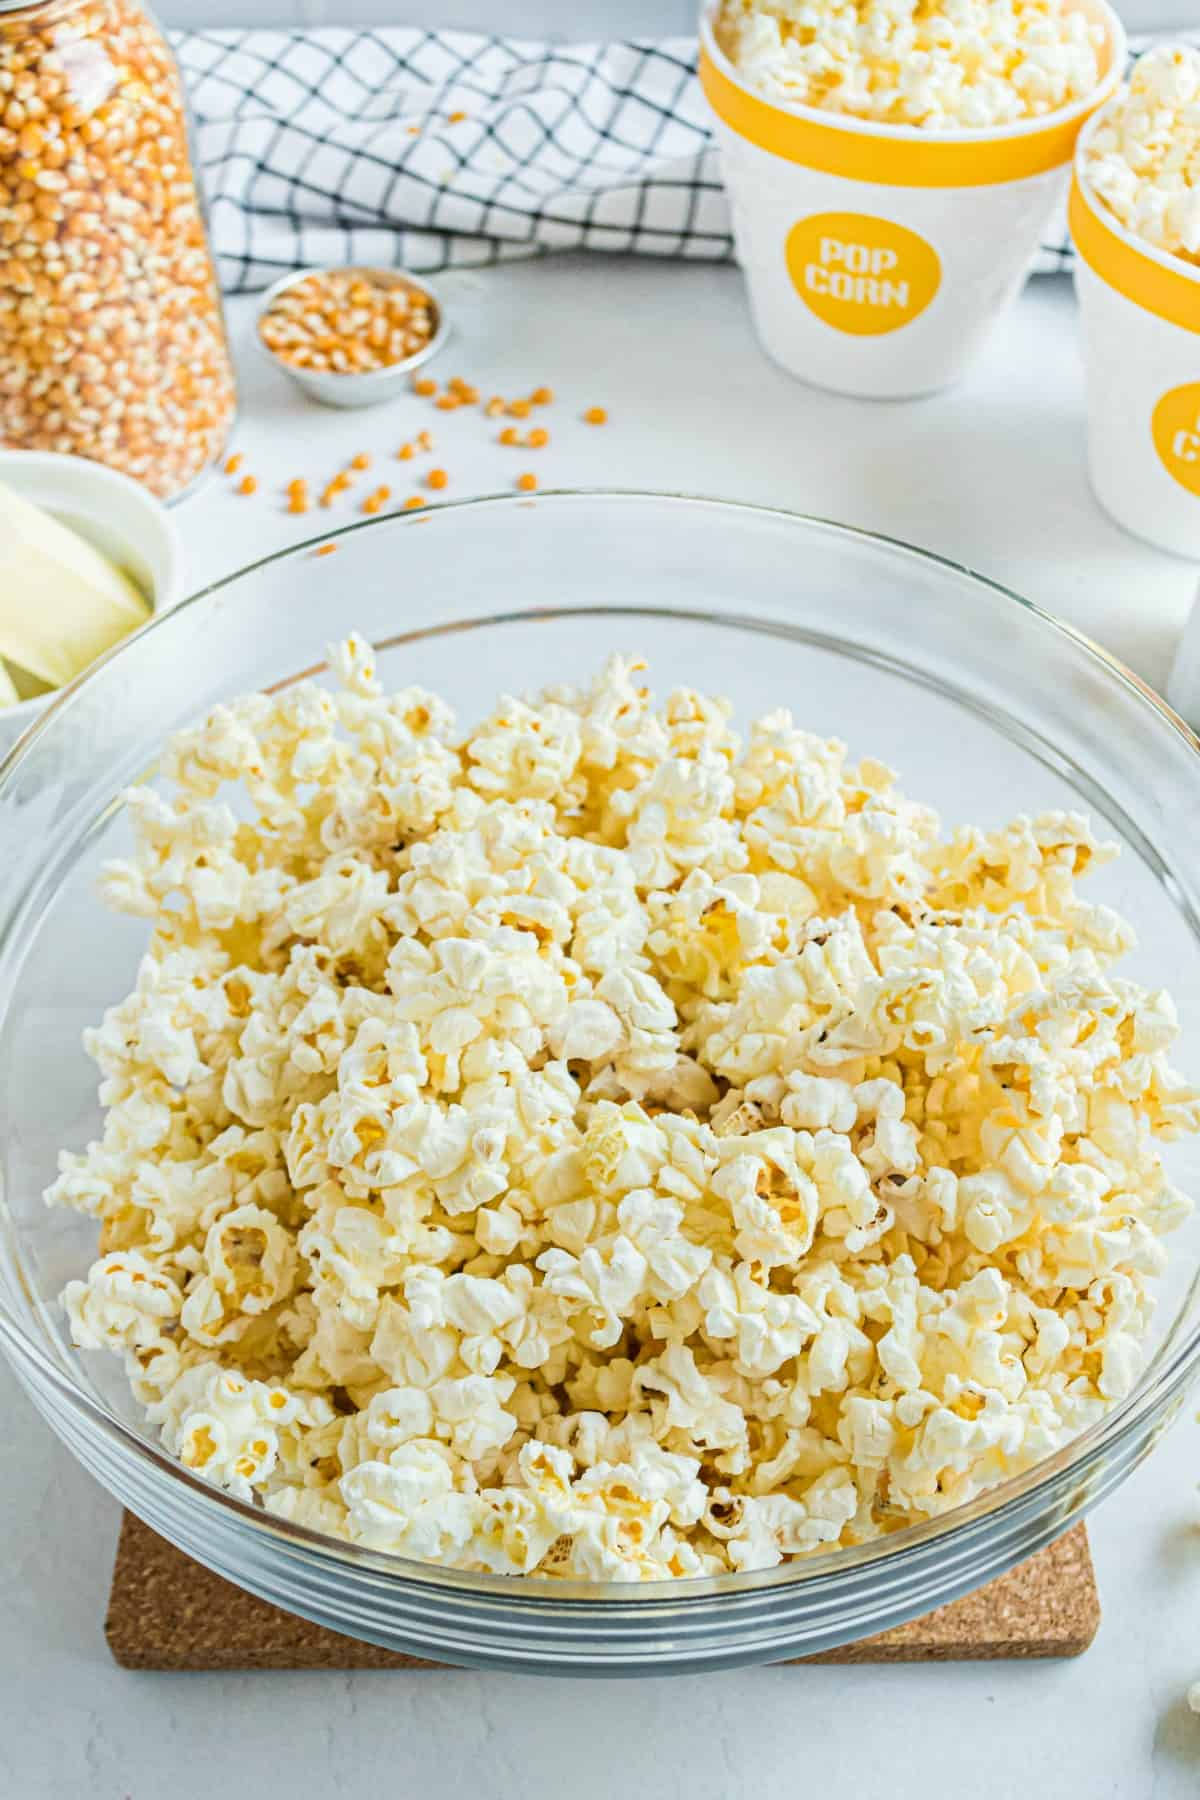 Clear glass bowl with microwave popcorn inside.